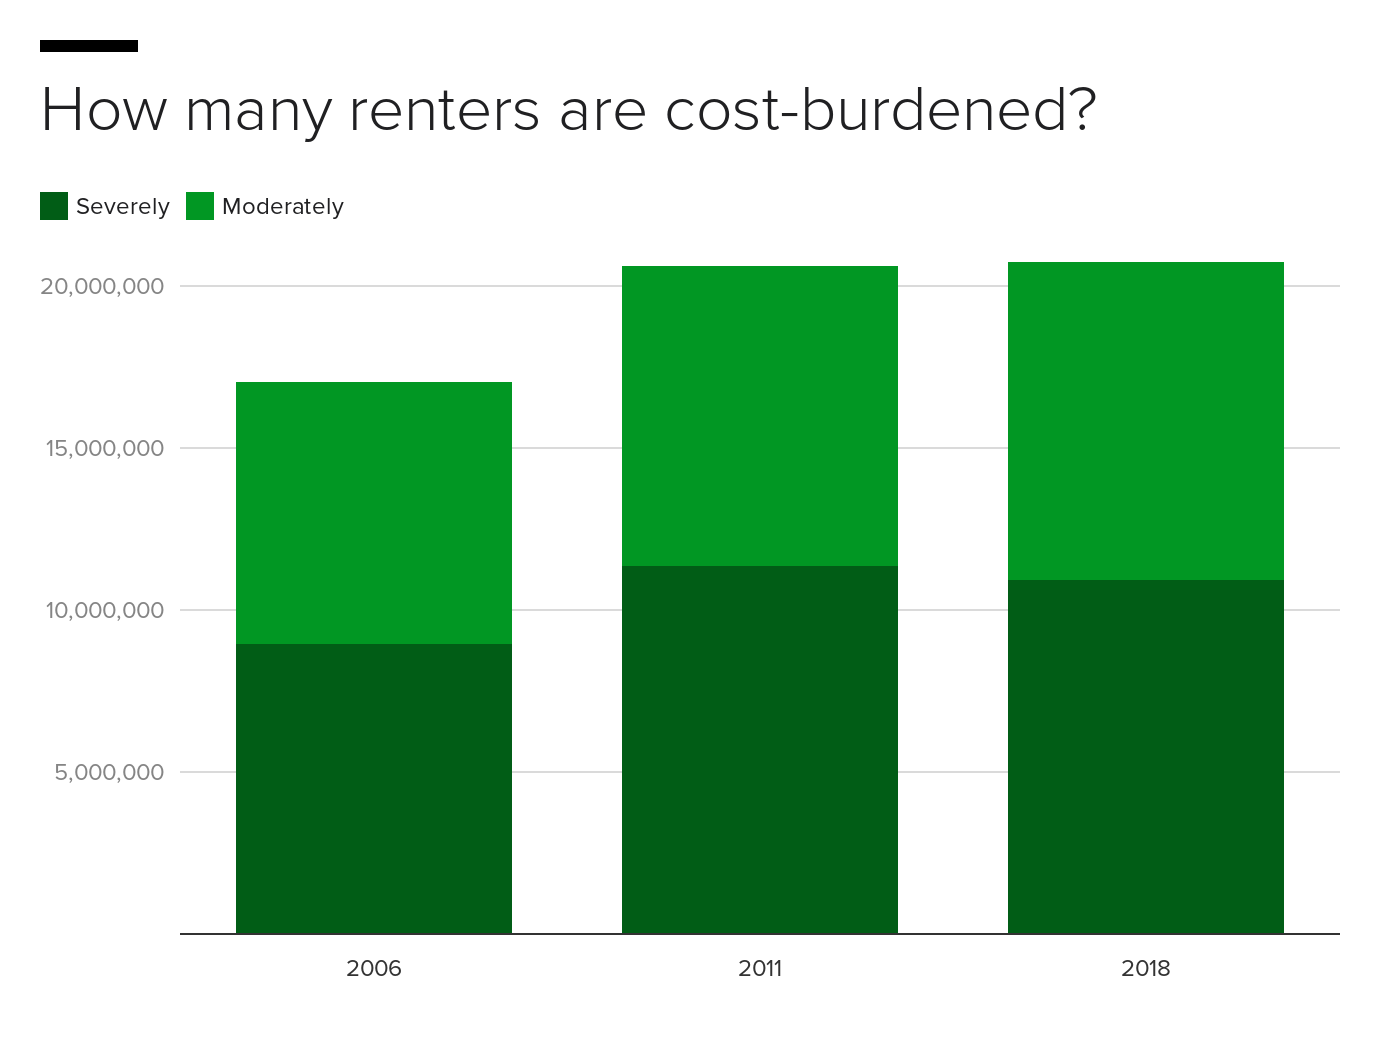 5dqnf-how-many-renters-are-cost-burdened.png